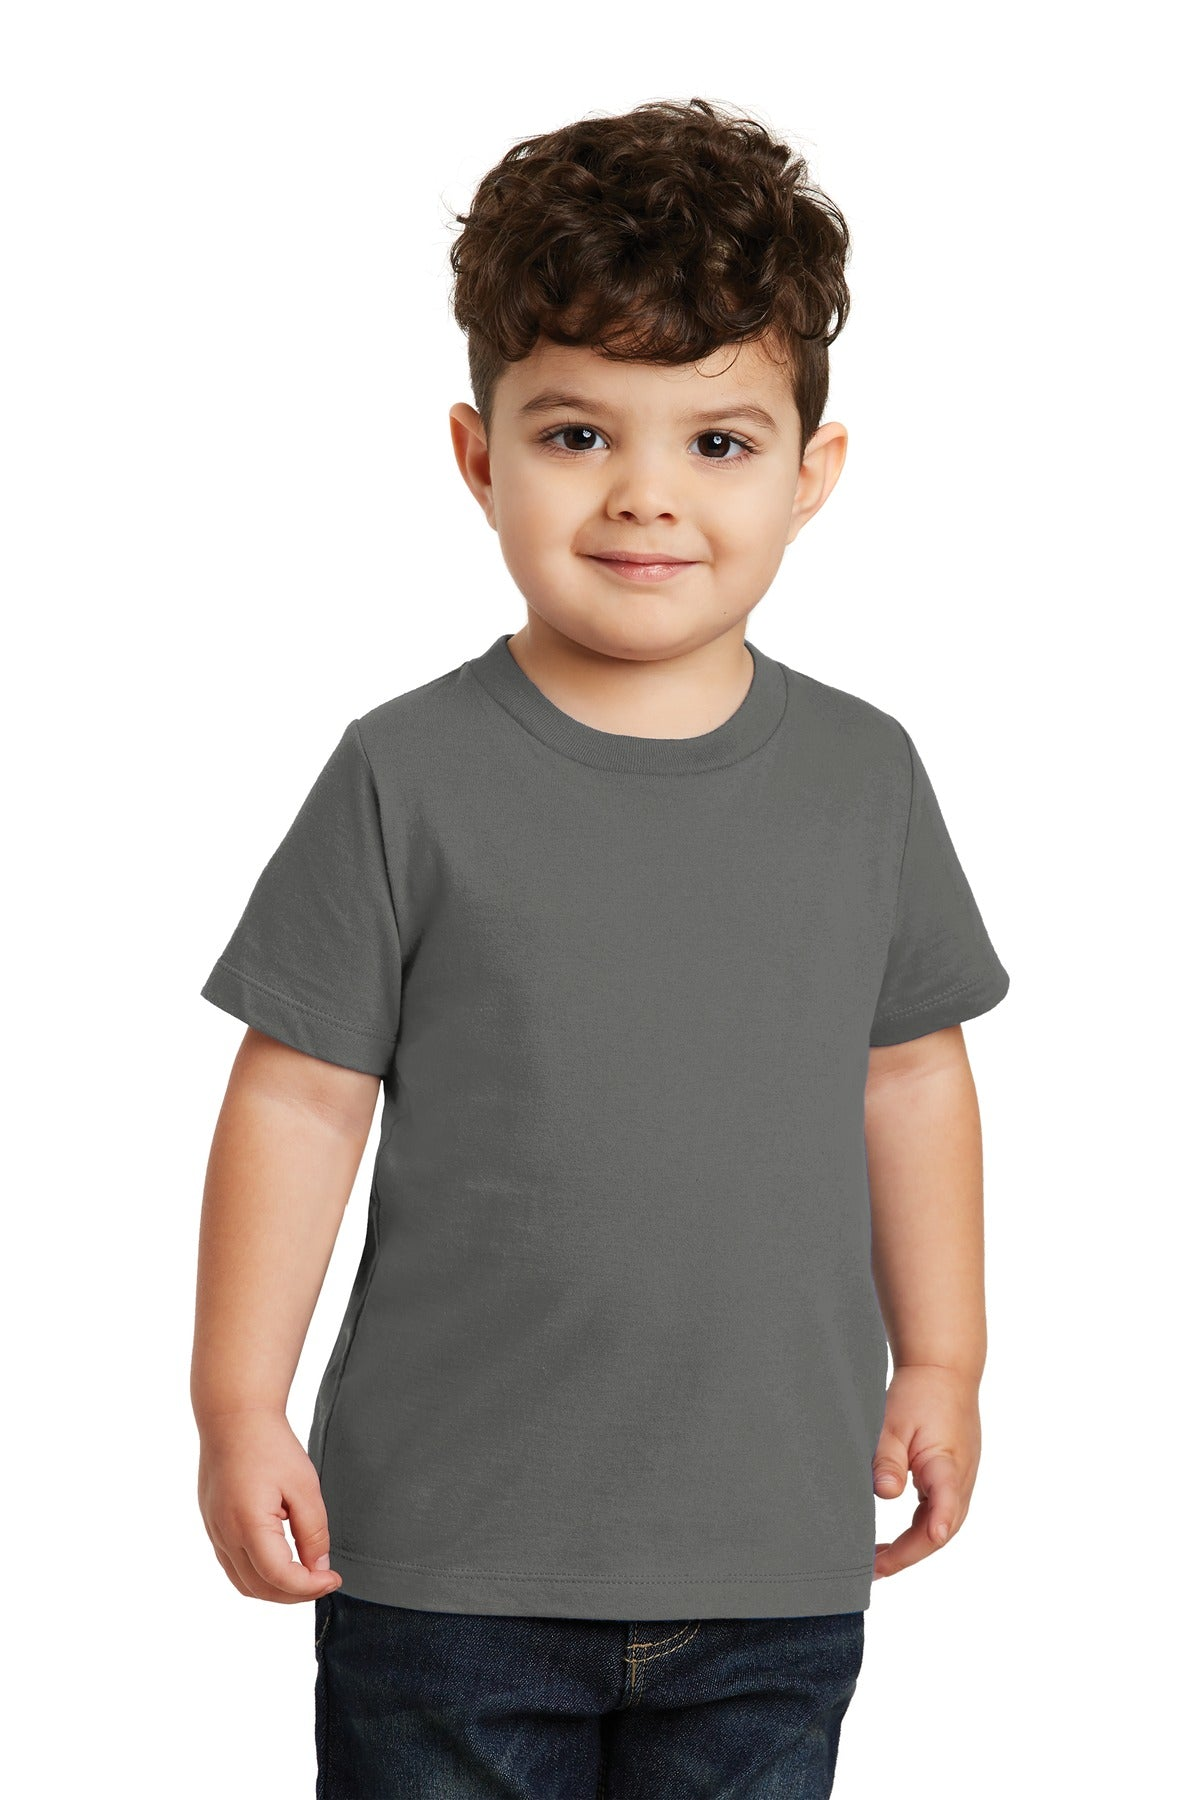 Charcoal Port & Company Toddler Fan Favorite T-Shirt